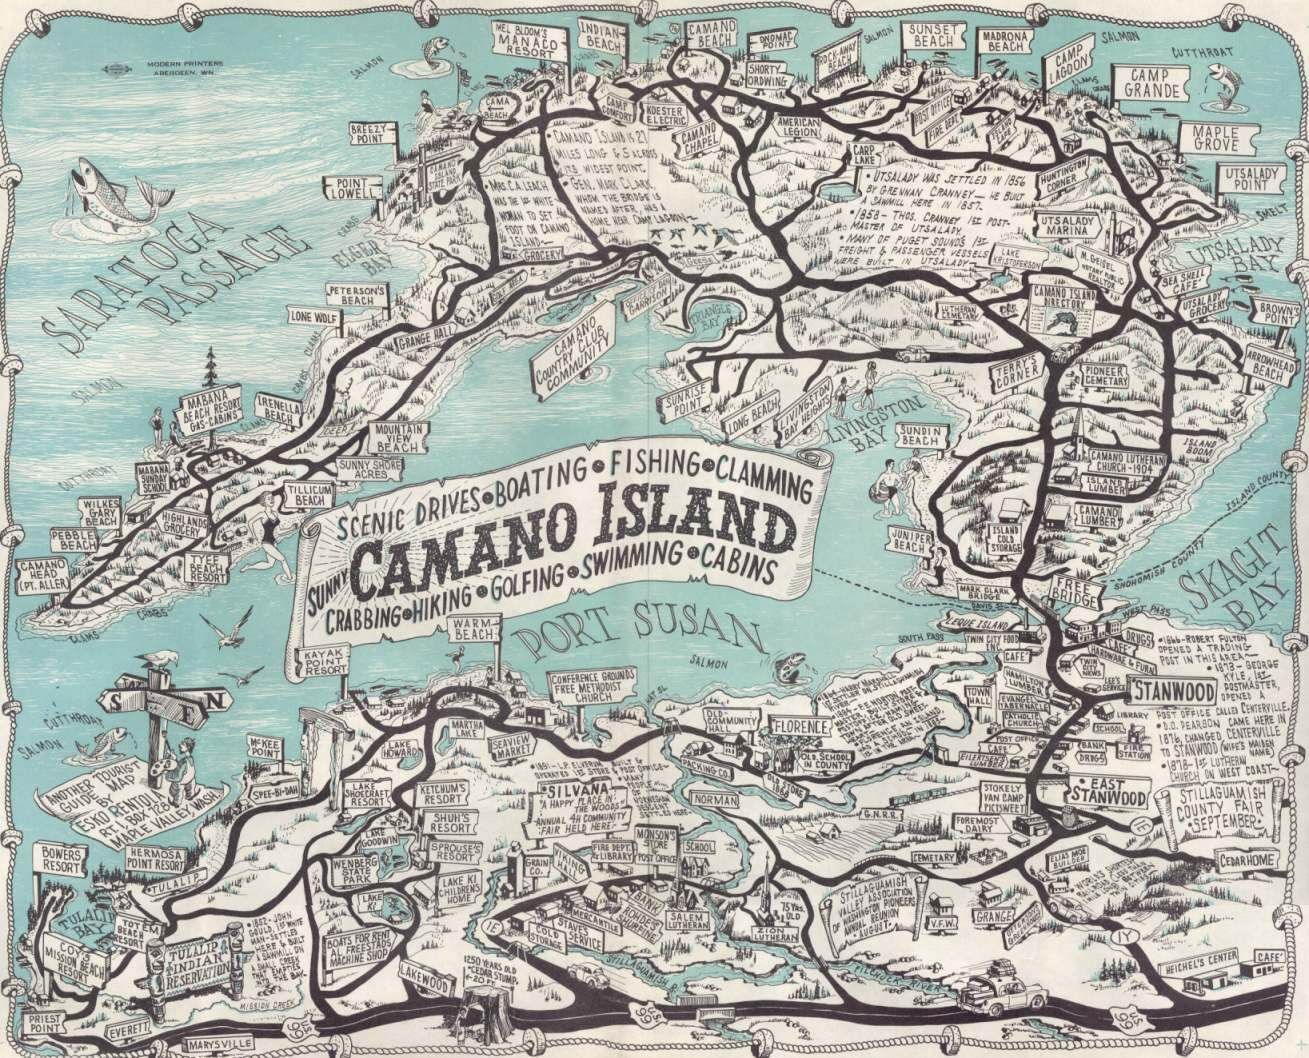 Camano island tourist map from 1958 cartography pinterest camano island tourist map from 1958 geenschuldenfo Image collections